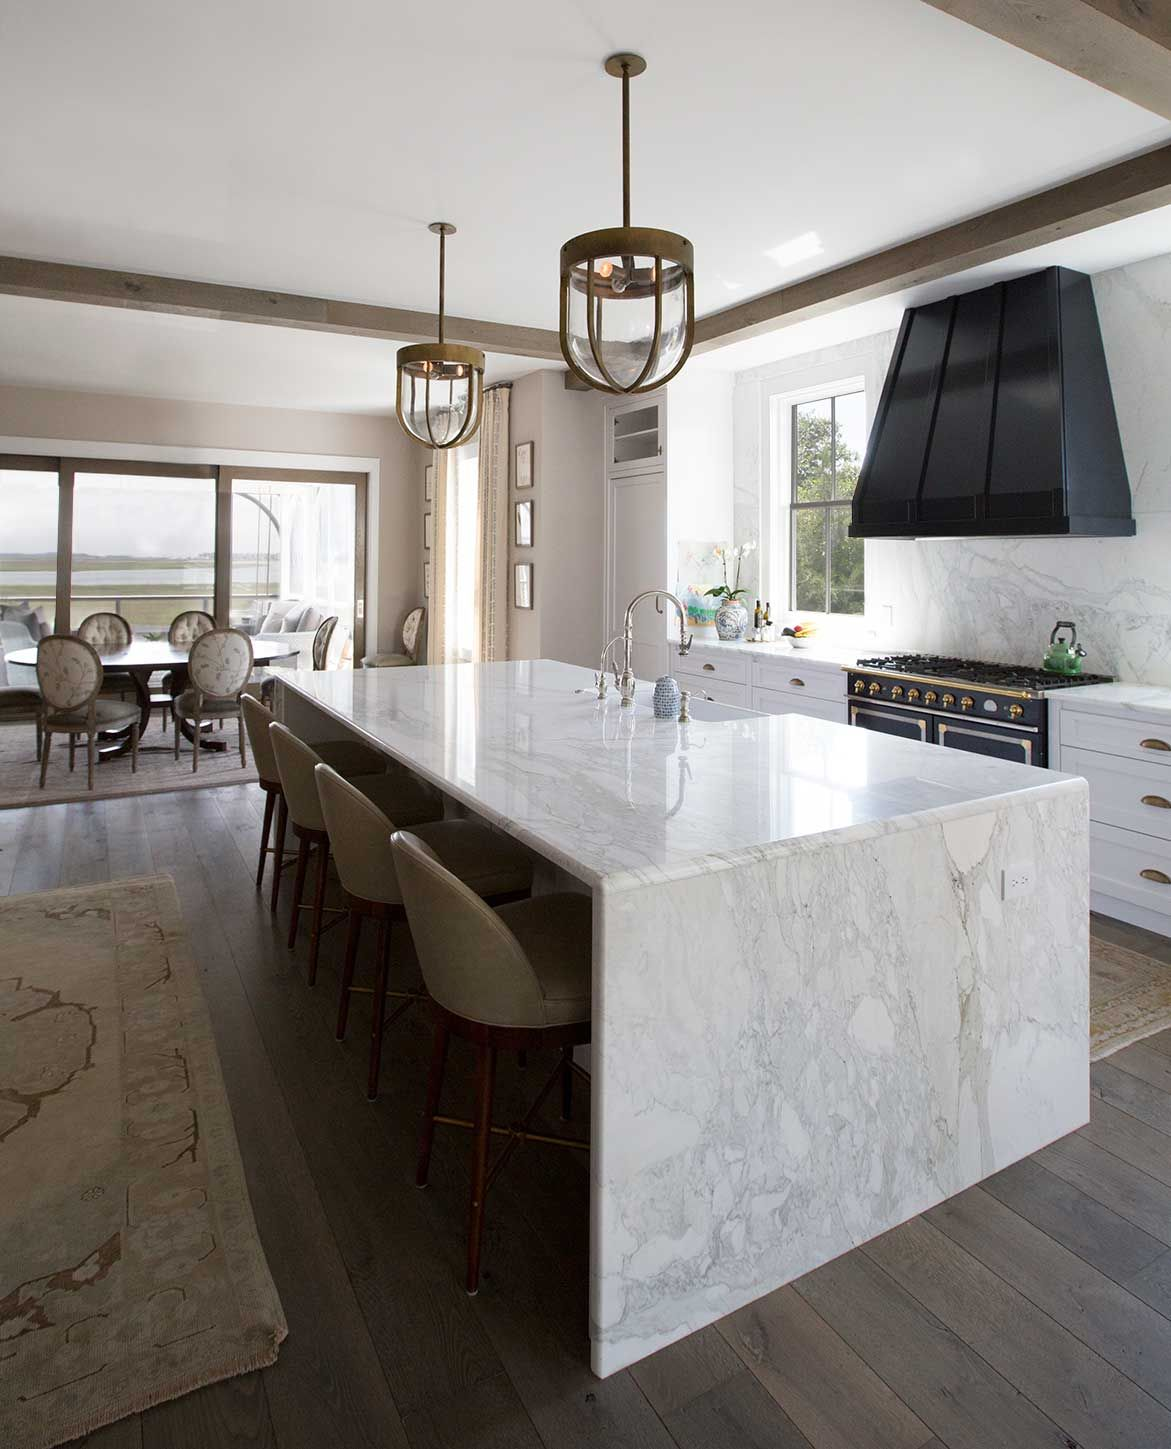 Marble Slab Island With Seating And Built In Sink Kitchen Island Design Marble Kitchen Island Kitchen Island With Sink